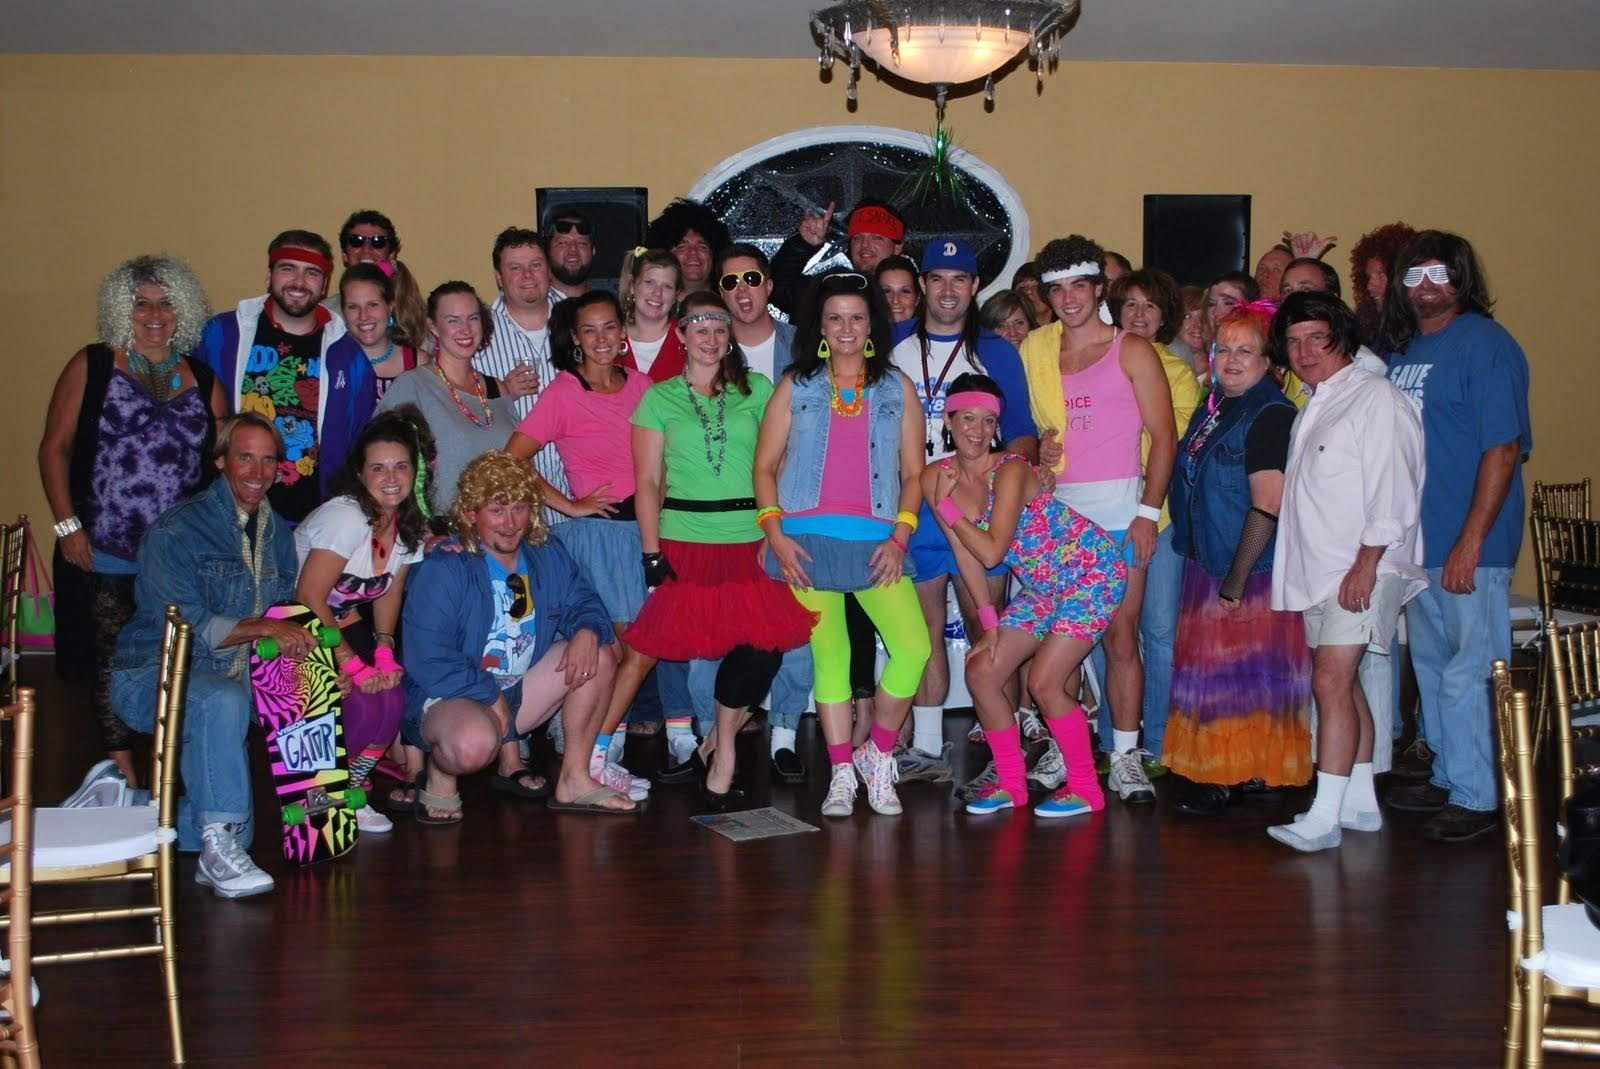 fun themed party ideas for adults | party decorations | pinterest